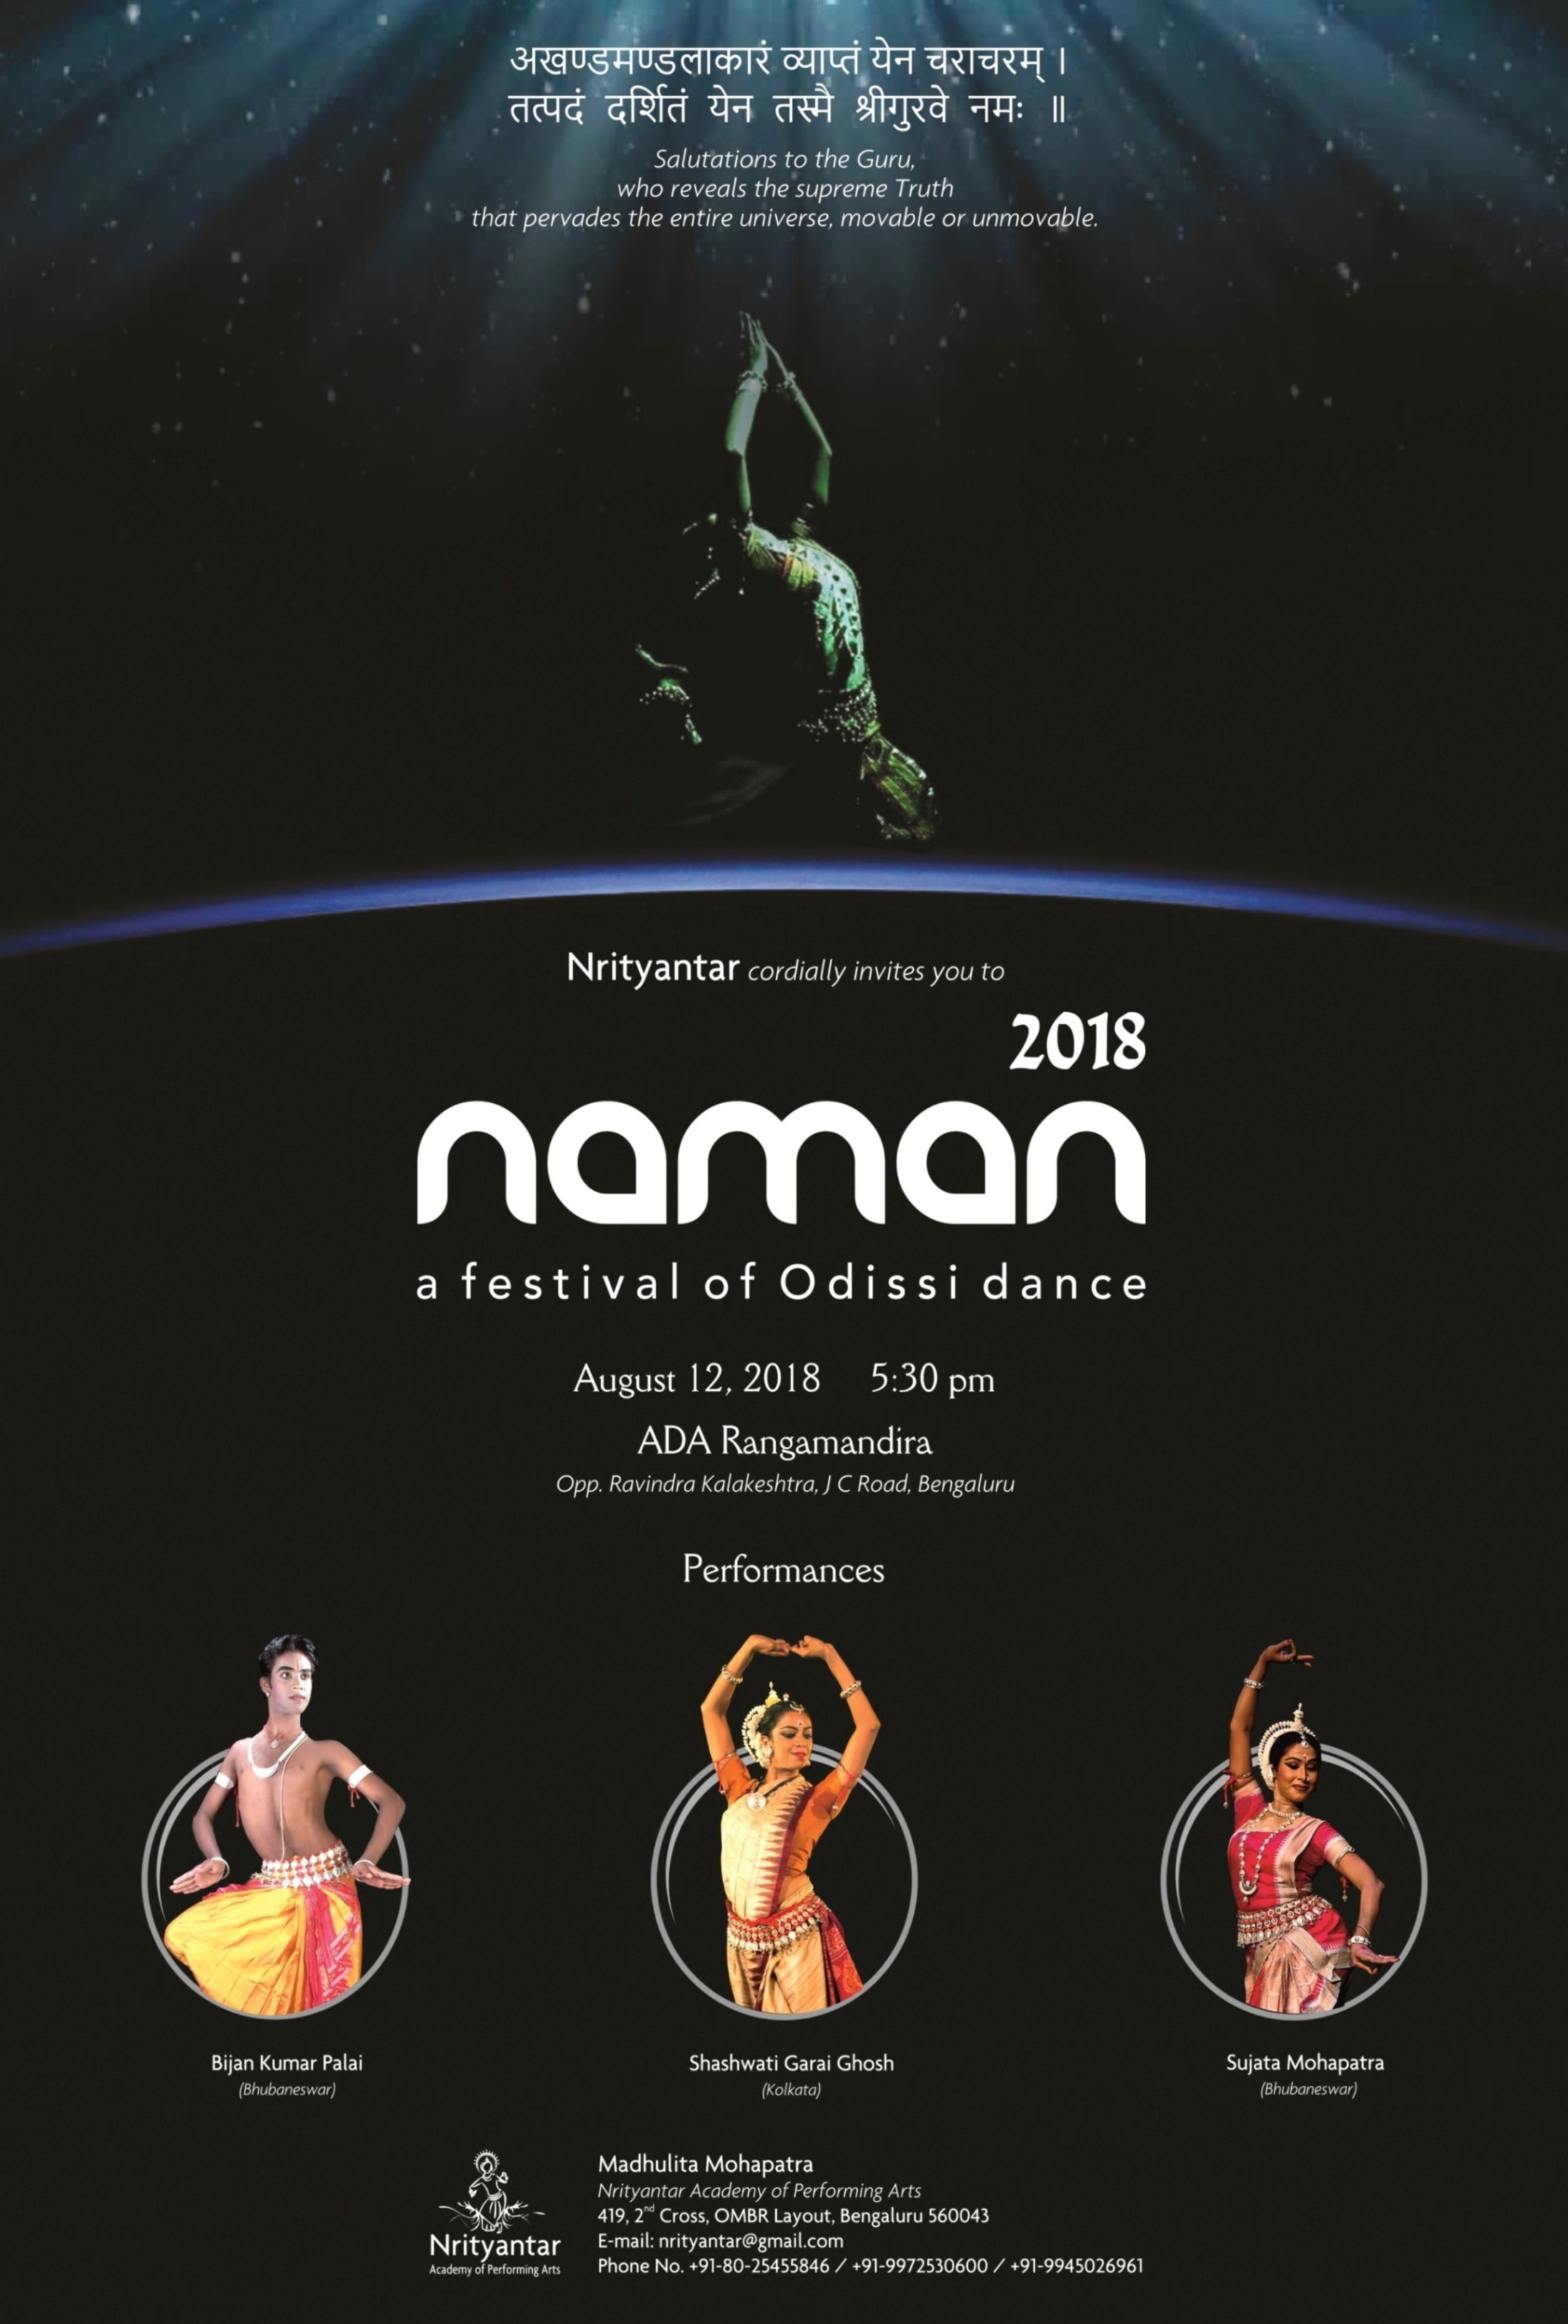 Naman a Festival of Odissi Dance